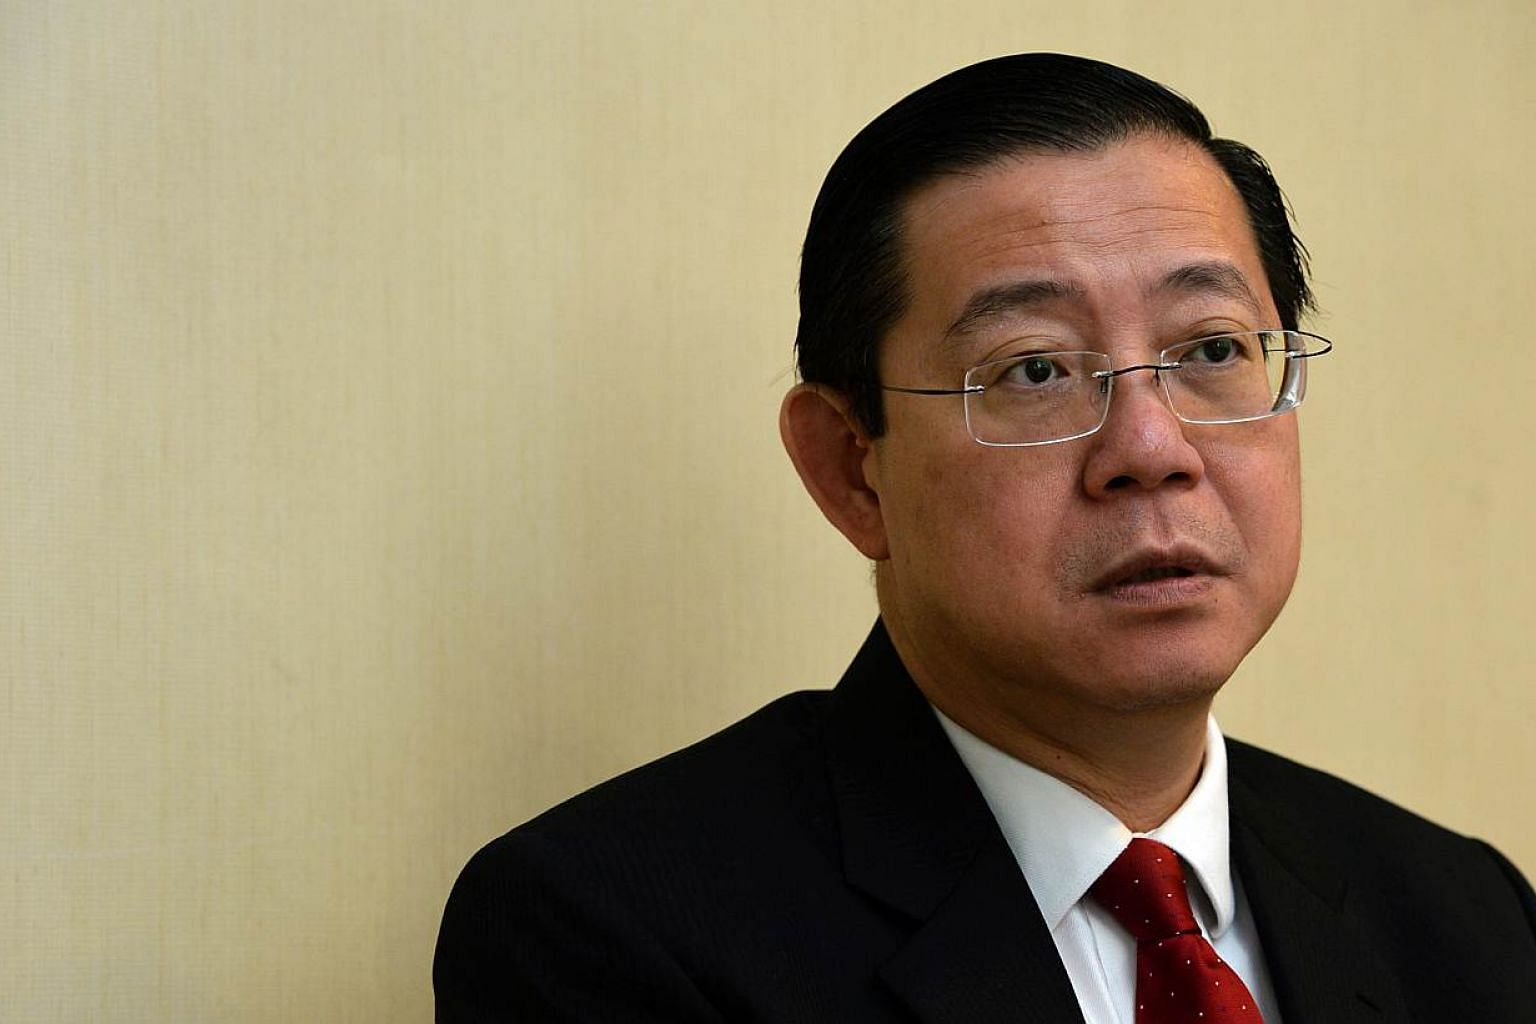 DAP Secretary-General Lim Guan Eng said the party's Central Executive Committee (CEC) accepted a motion by Parti Islam SeMalaysia's (PAS) muktamar or general assembly to sever ties with DAP. -- PHOTO: BUSINESS TIMES FILE